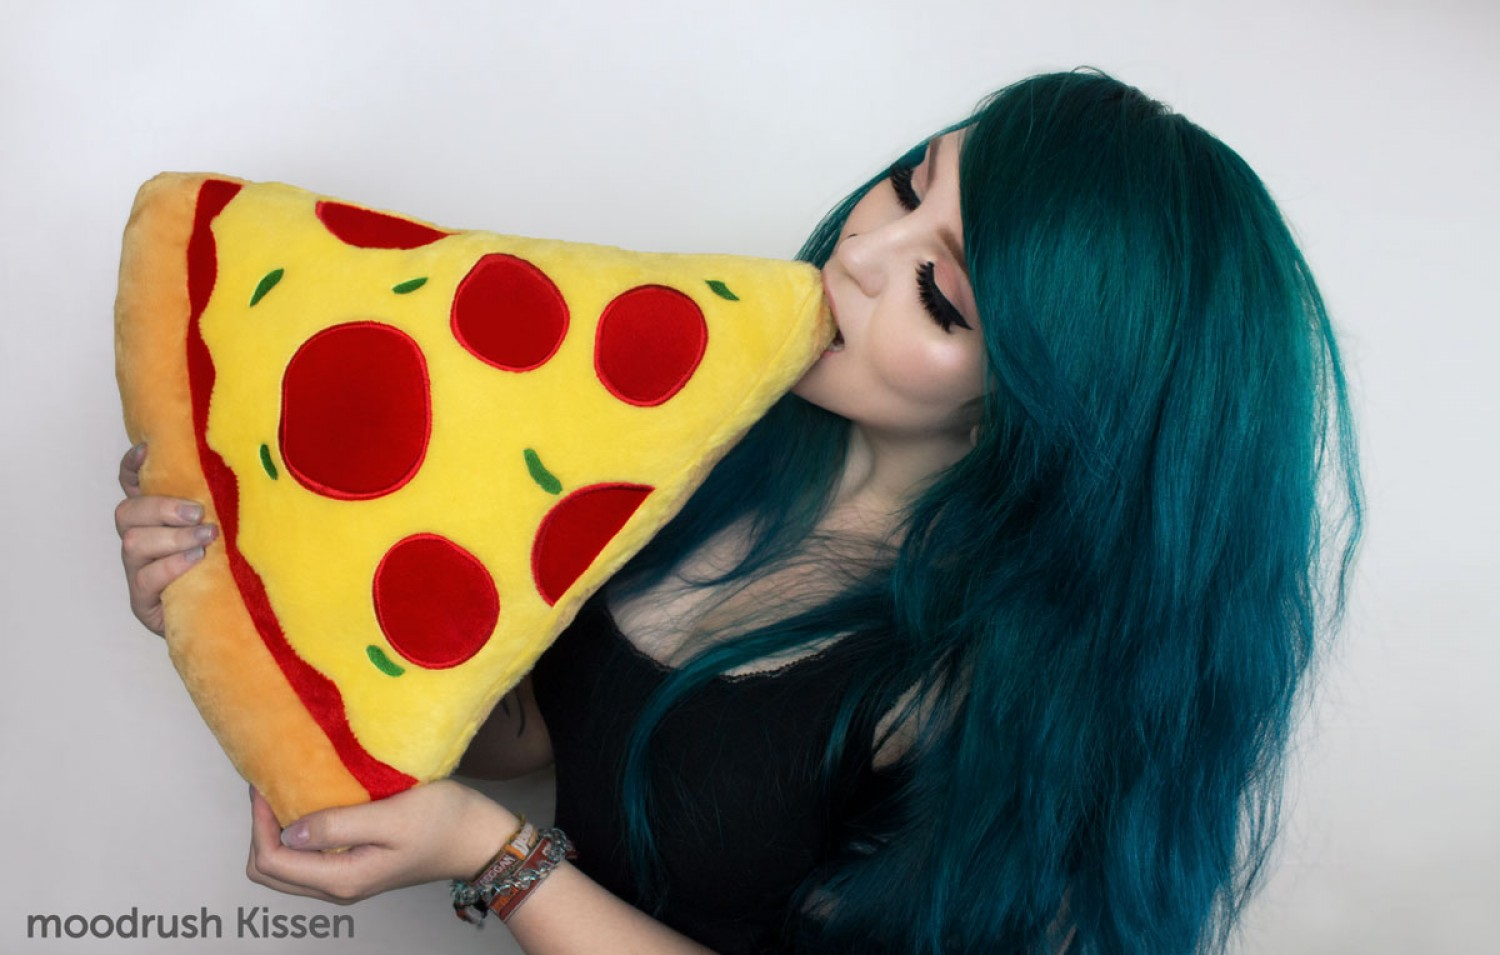 Pizza Kissen Cute Girl